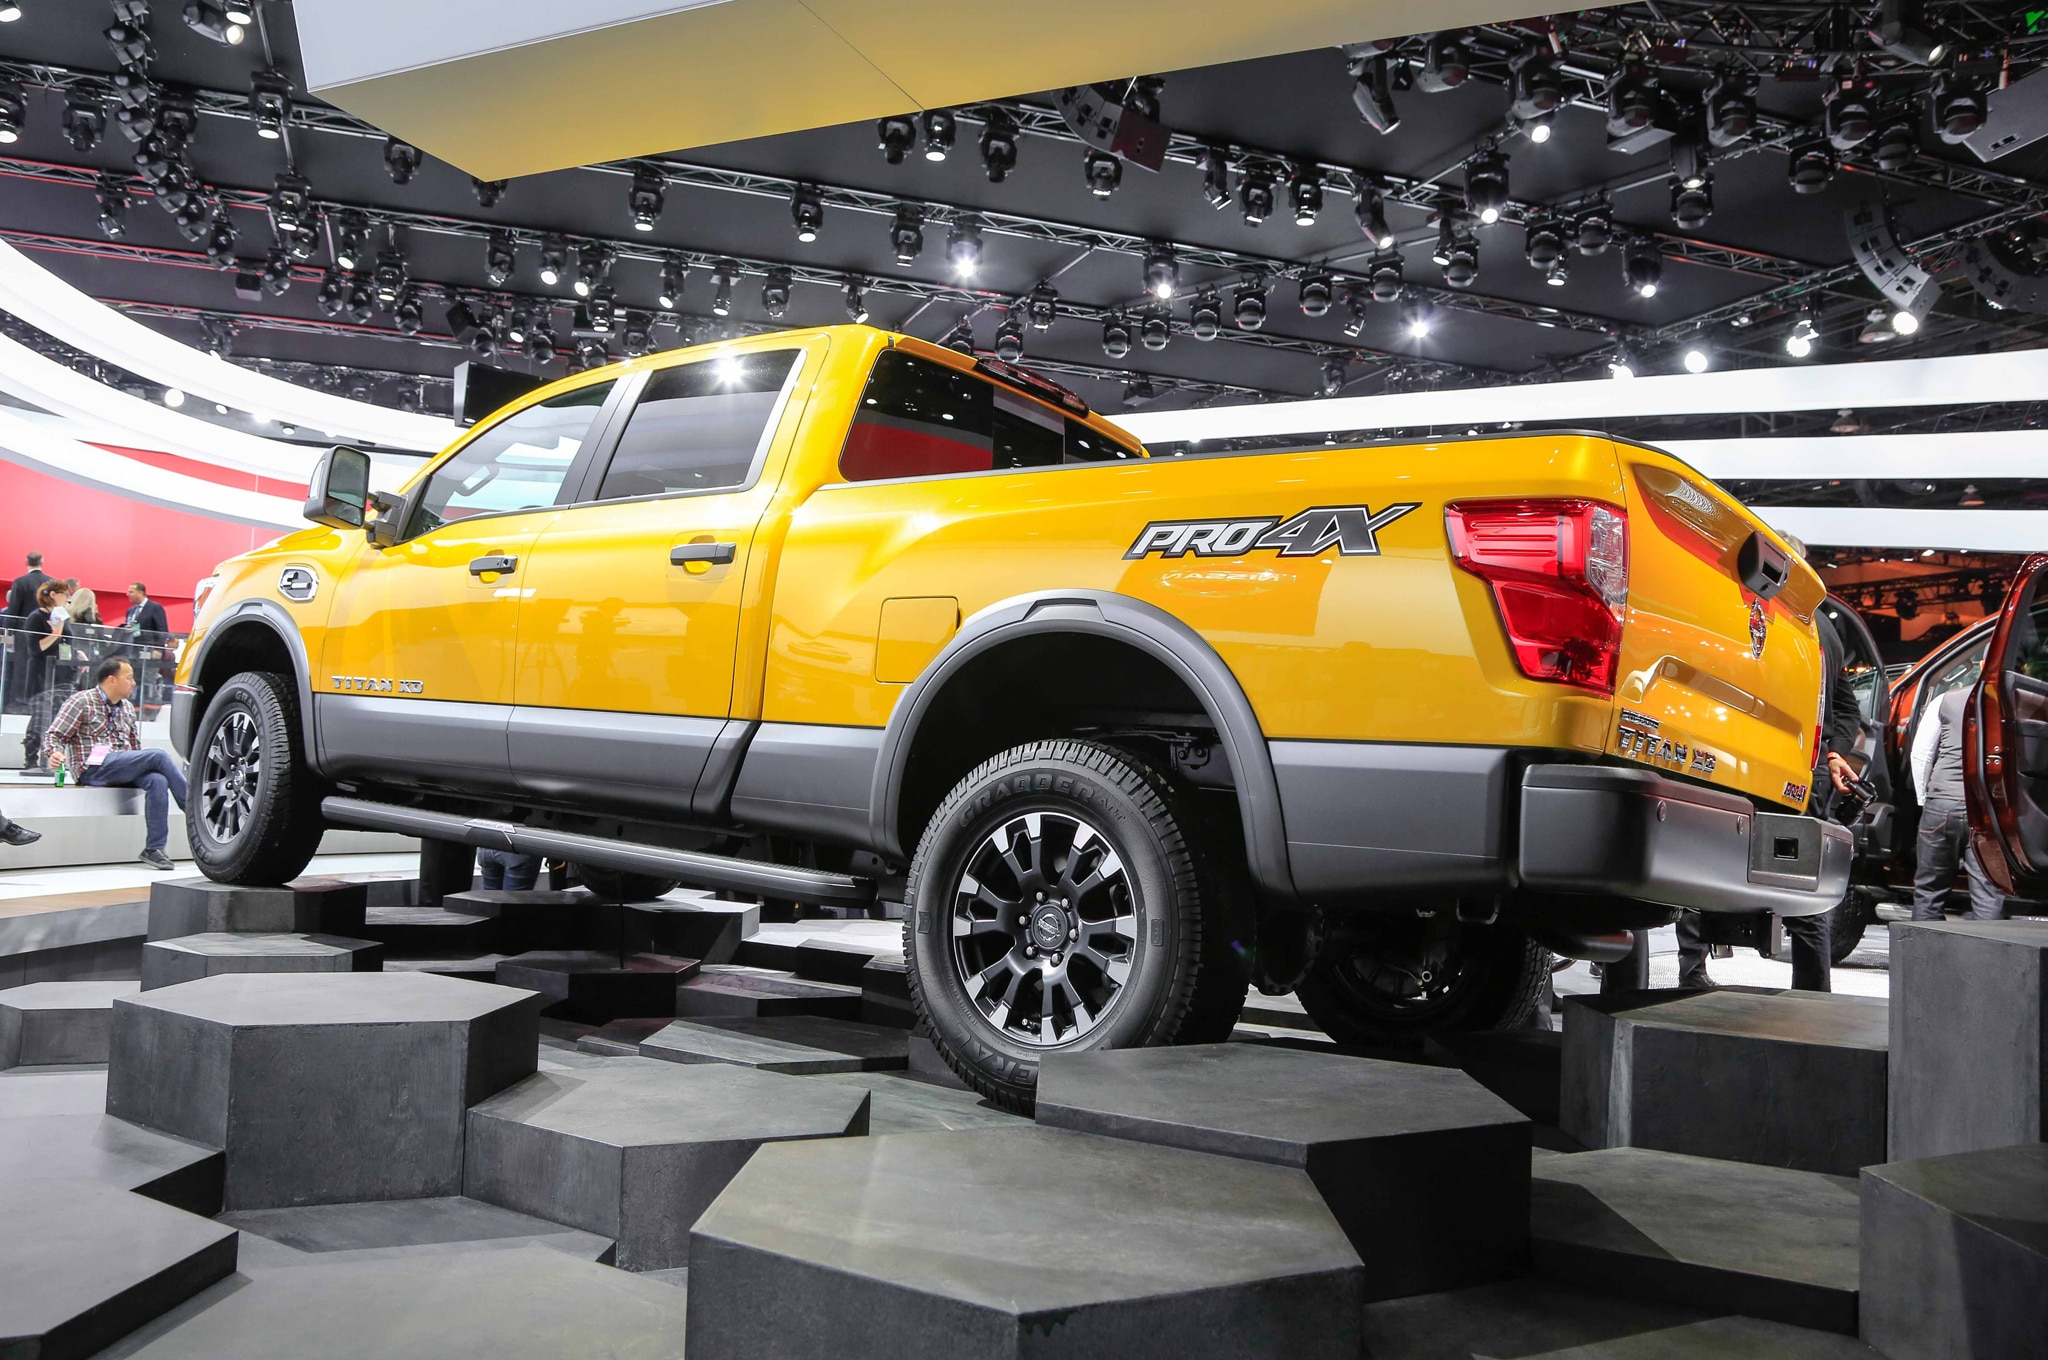 2016 nissan titan xd to attempt land speed record. Black Bedroom Furniture Sets. Home Design Ideas